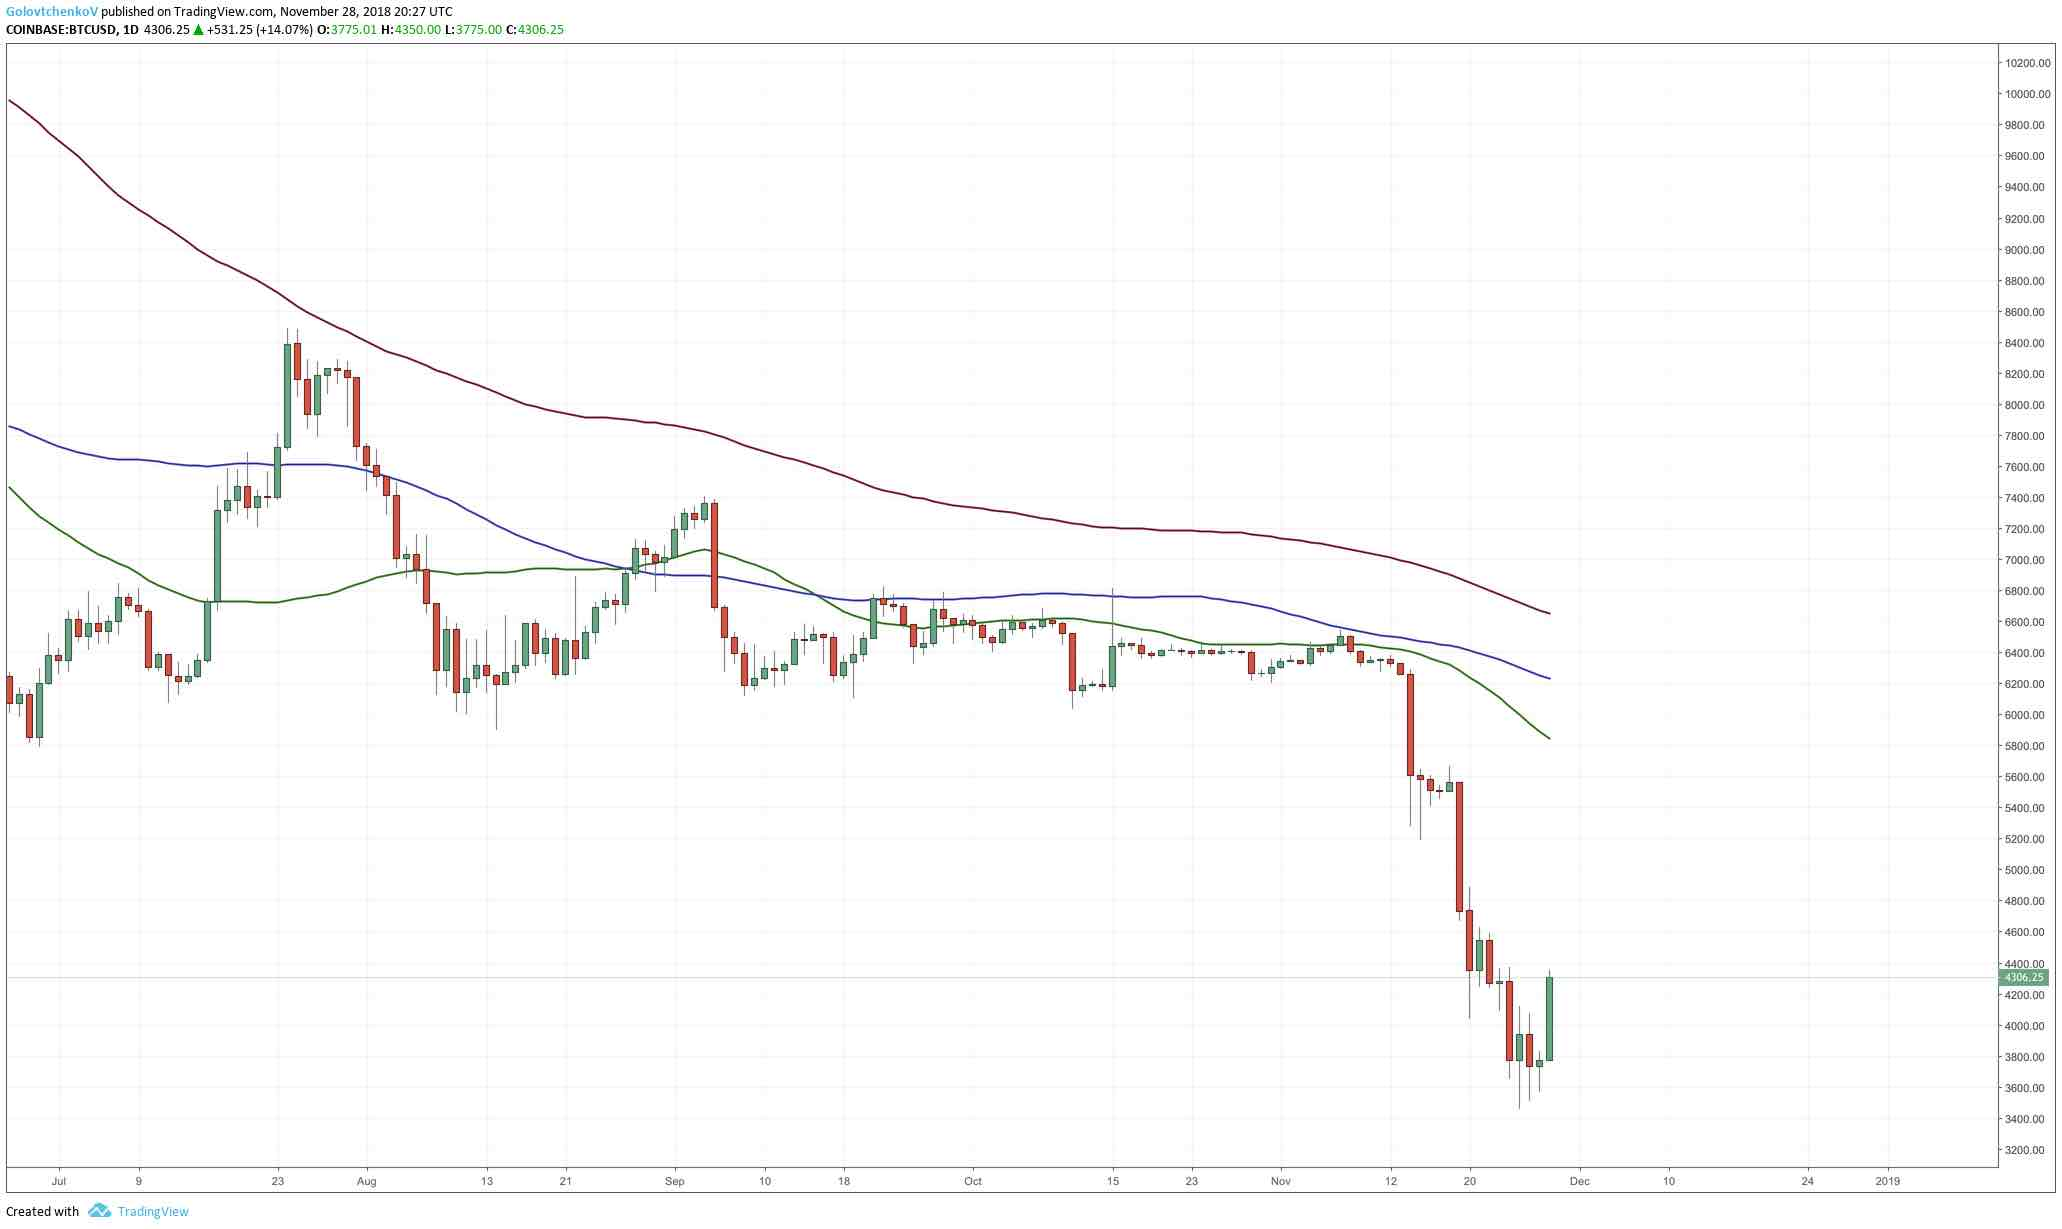 An image displaying the daily chart of Bitcoin